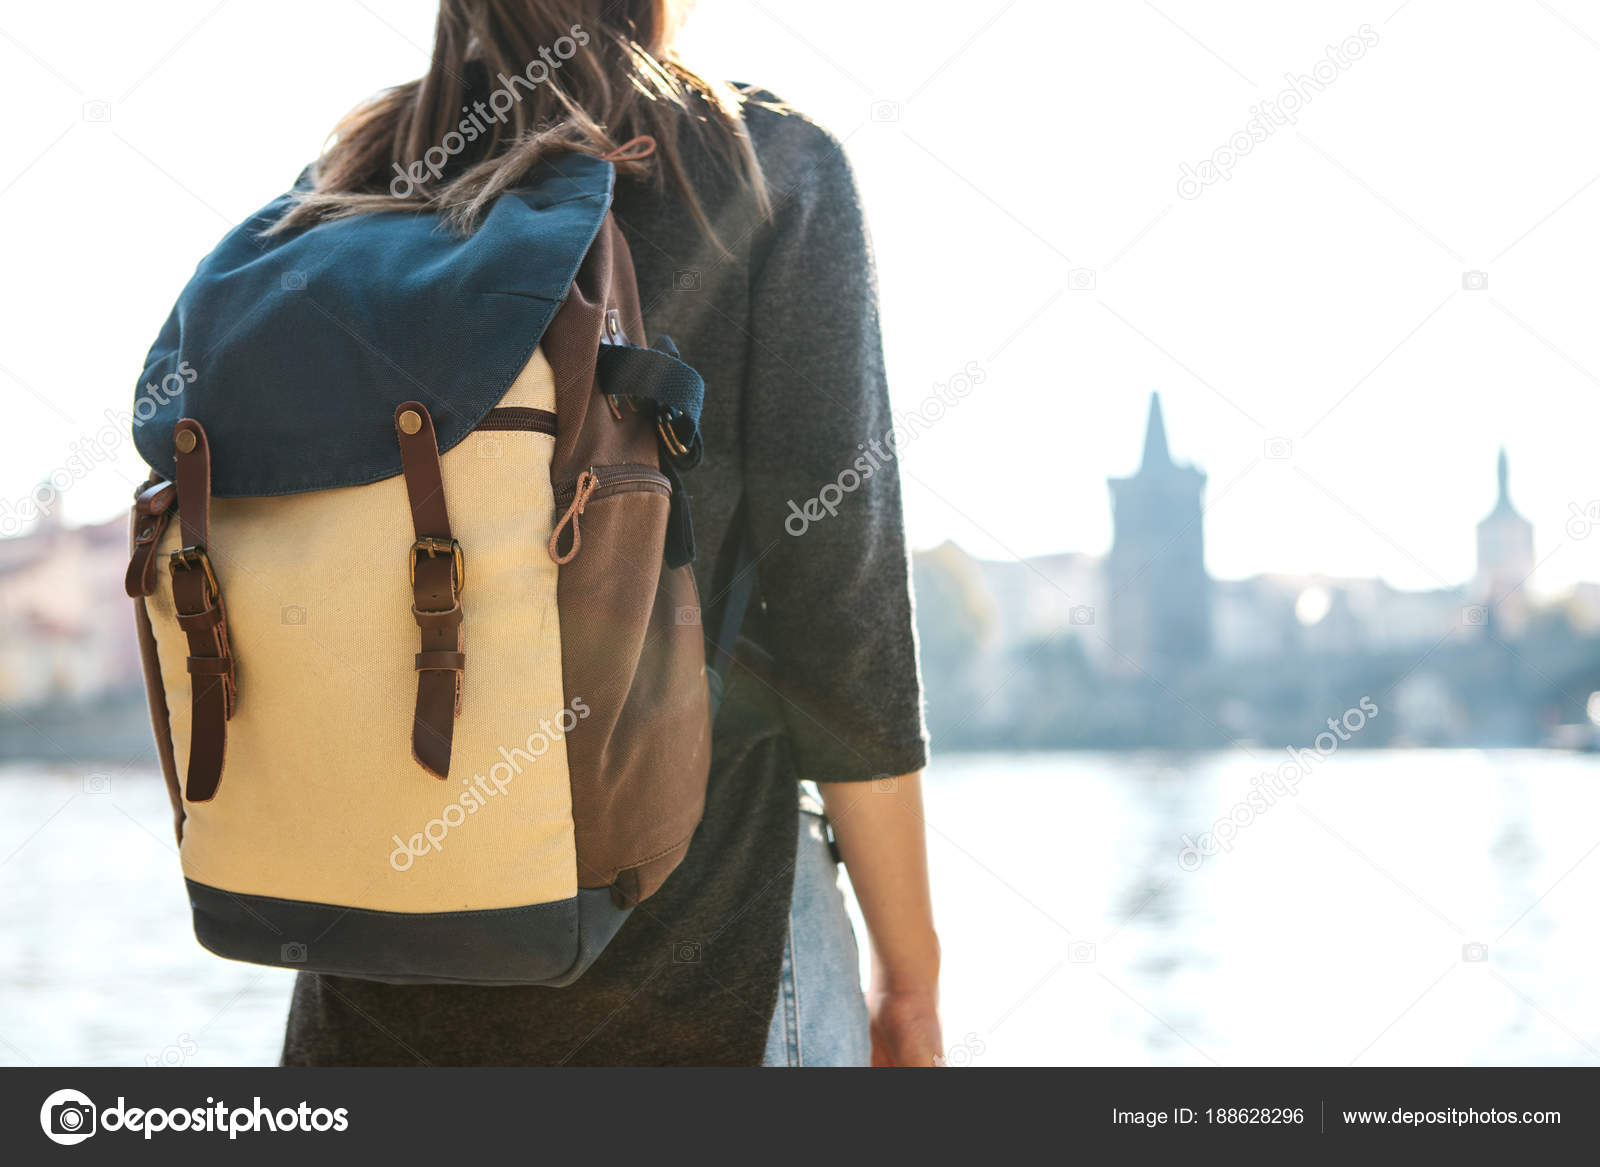 ad4e7456fe7b A beautiful young tourist girl with a backpack stands next to the Vltava  river in Prague and admires one of the most popular attractions called the  Charles ...